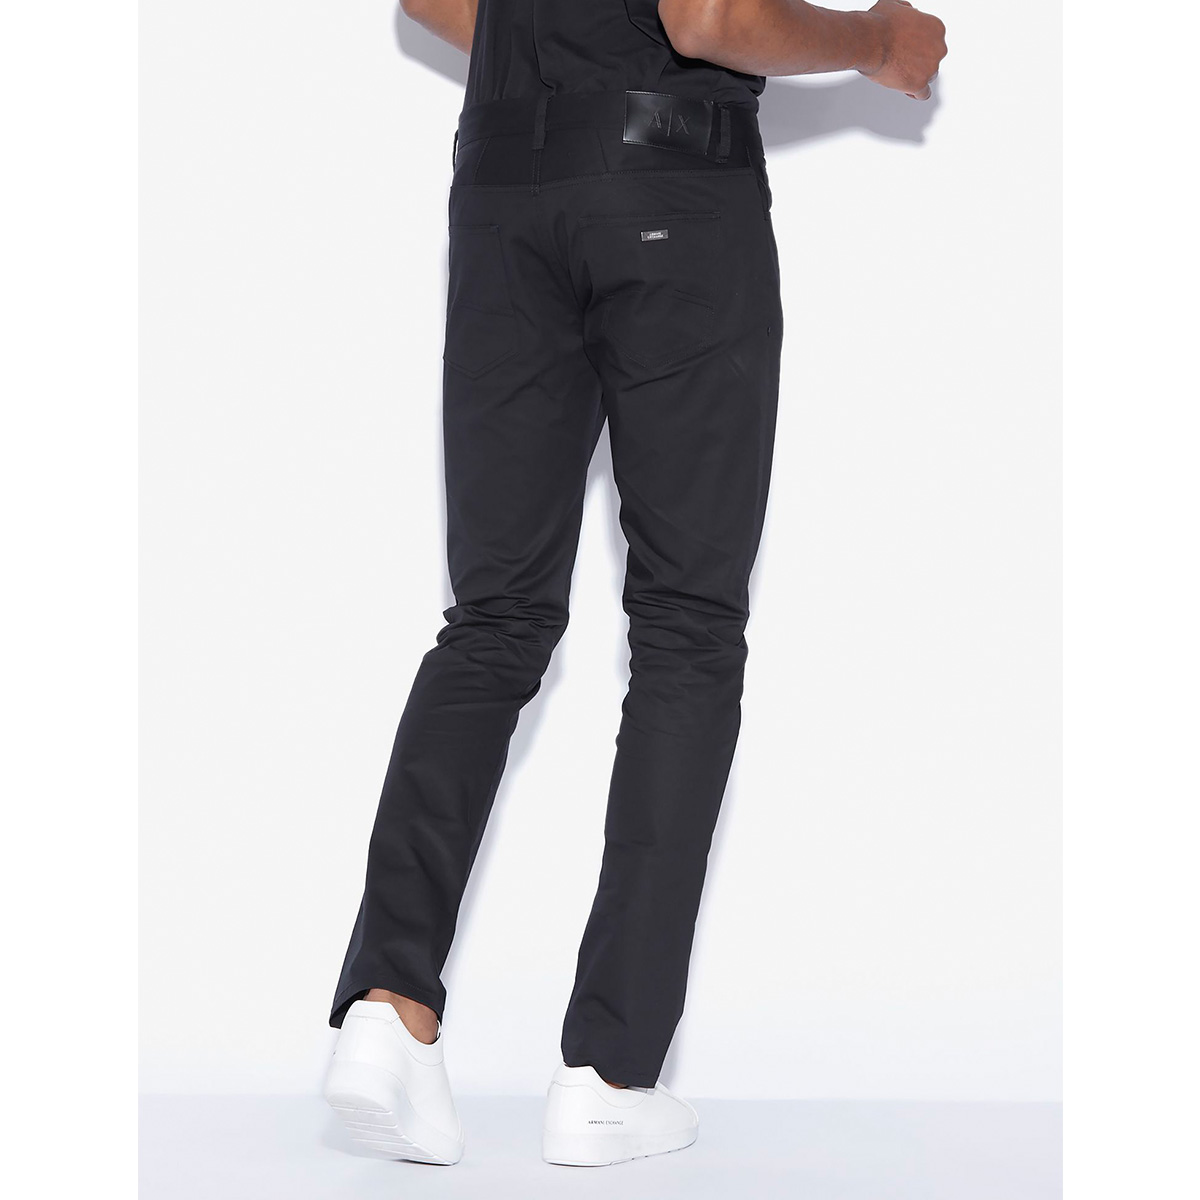 quan-kaki-armani-exchange-slim-fit-26